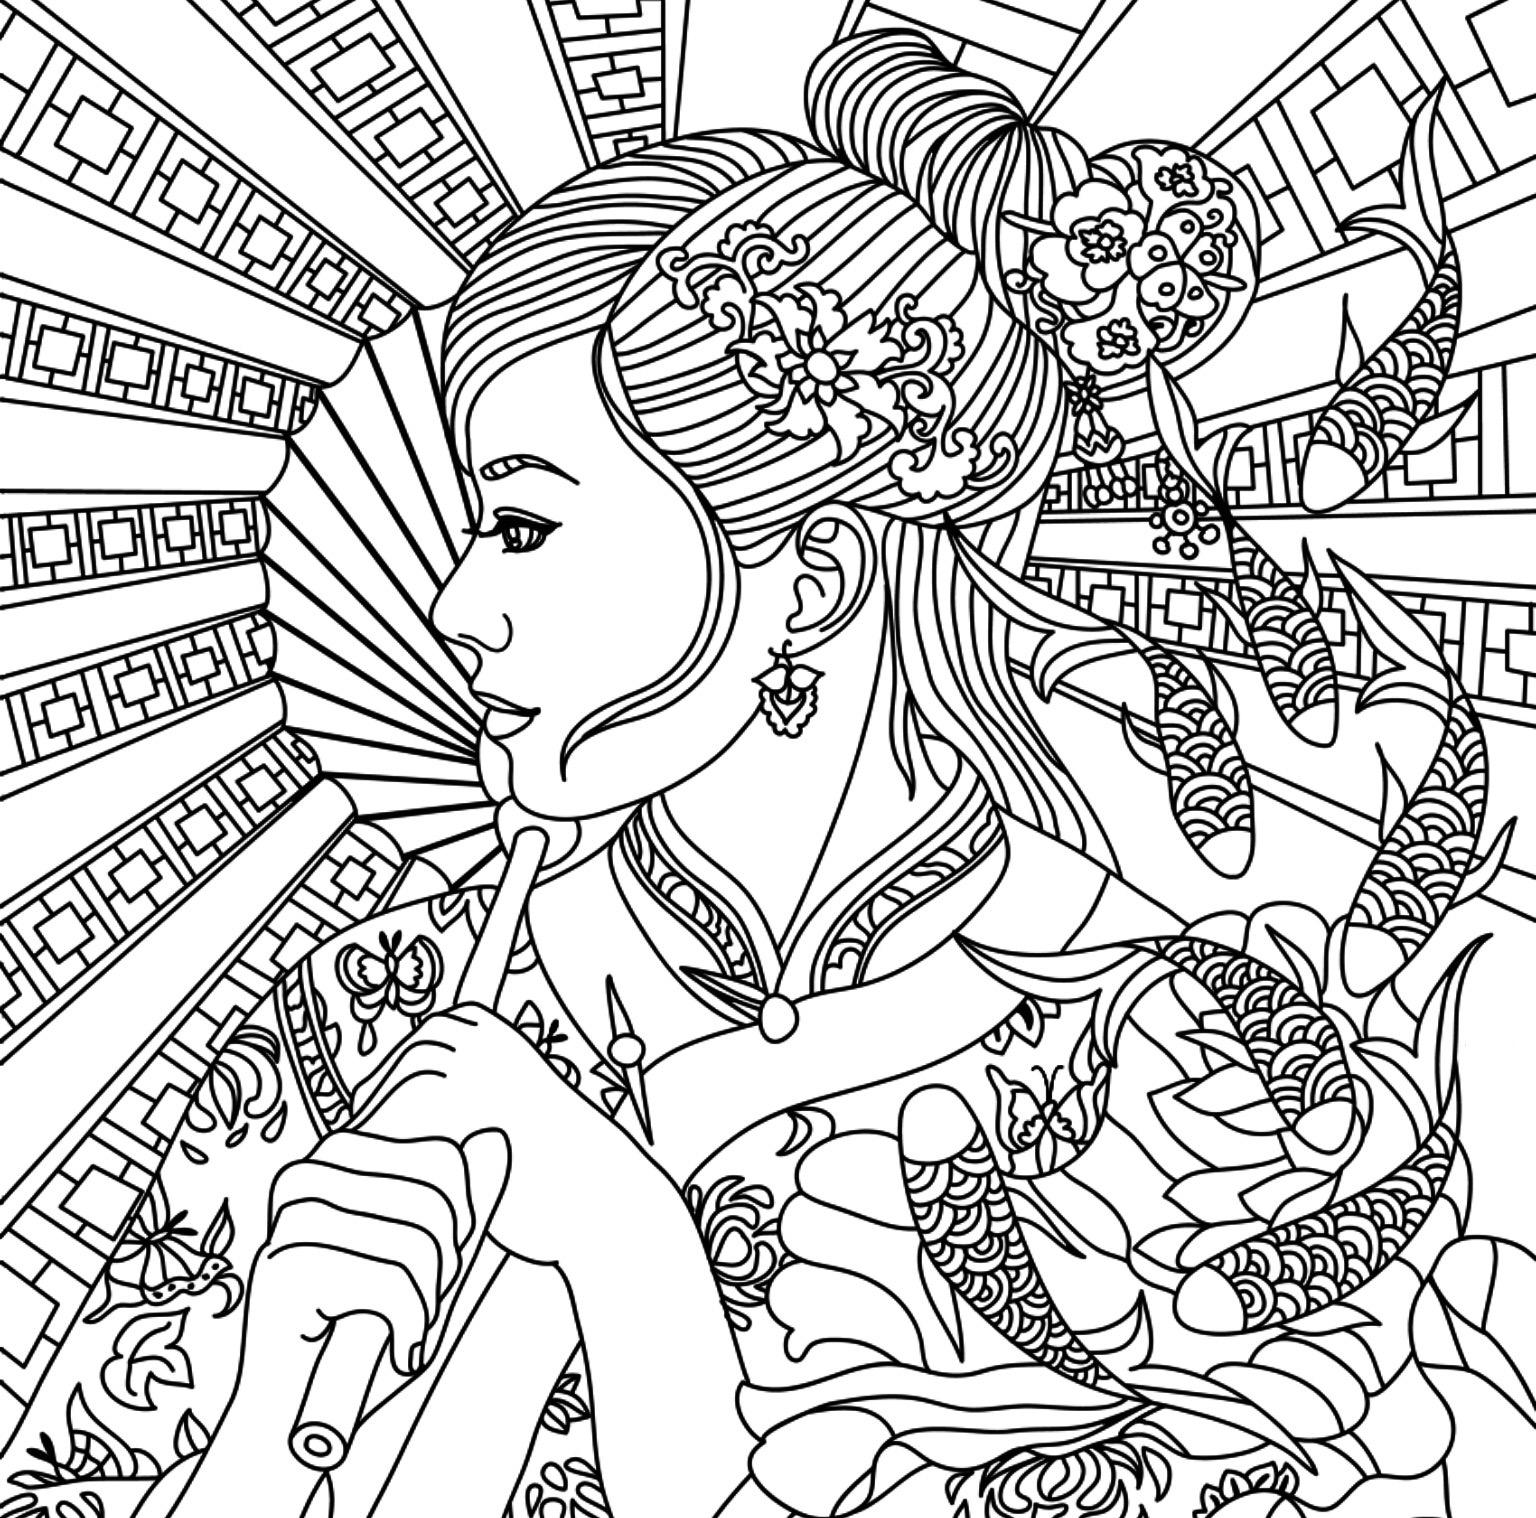 1536x1518 Adult Coloring Pages People Download Free Coloring Pages Download